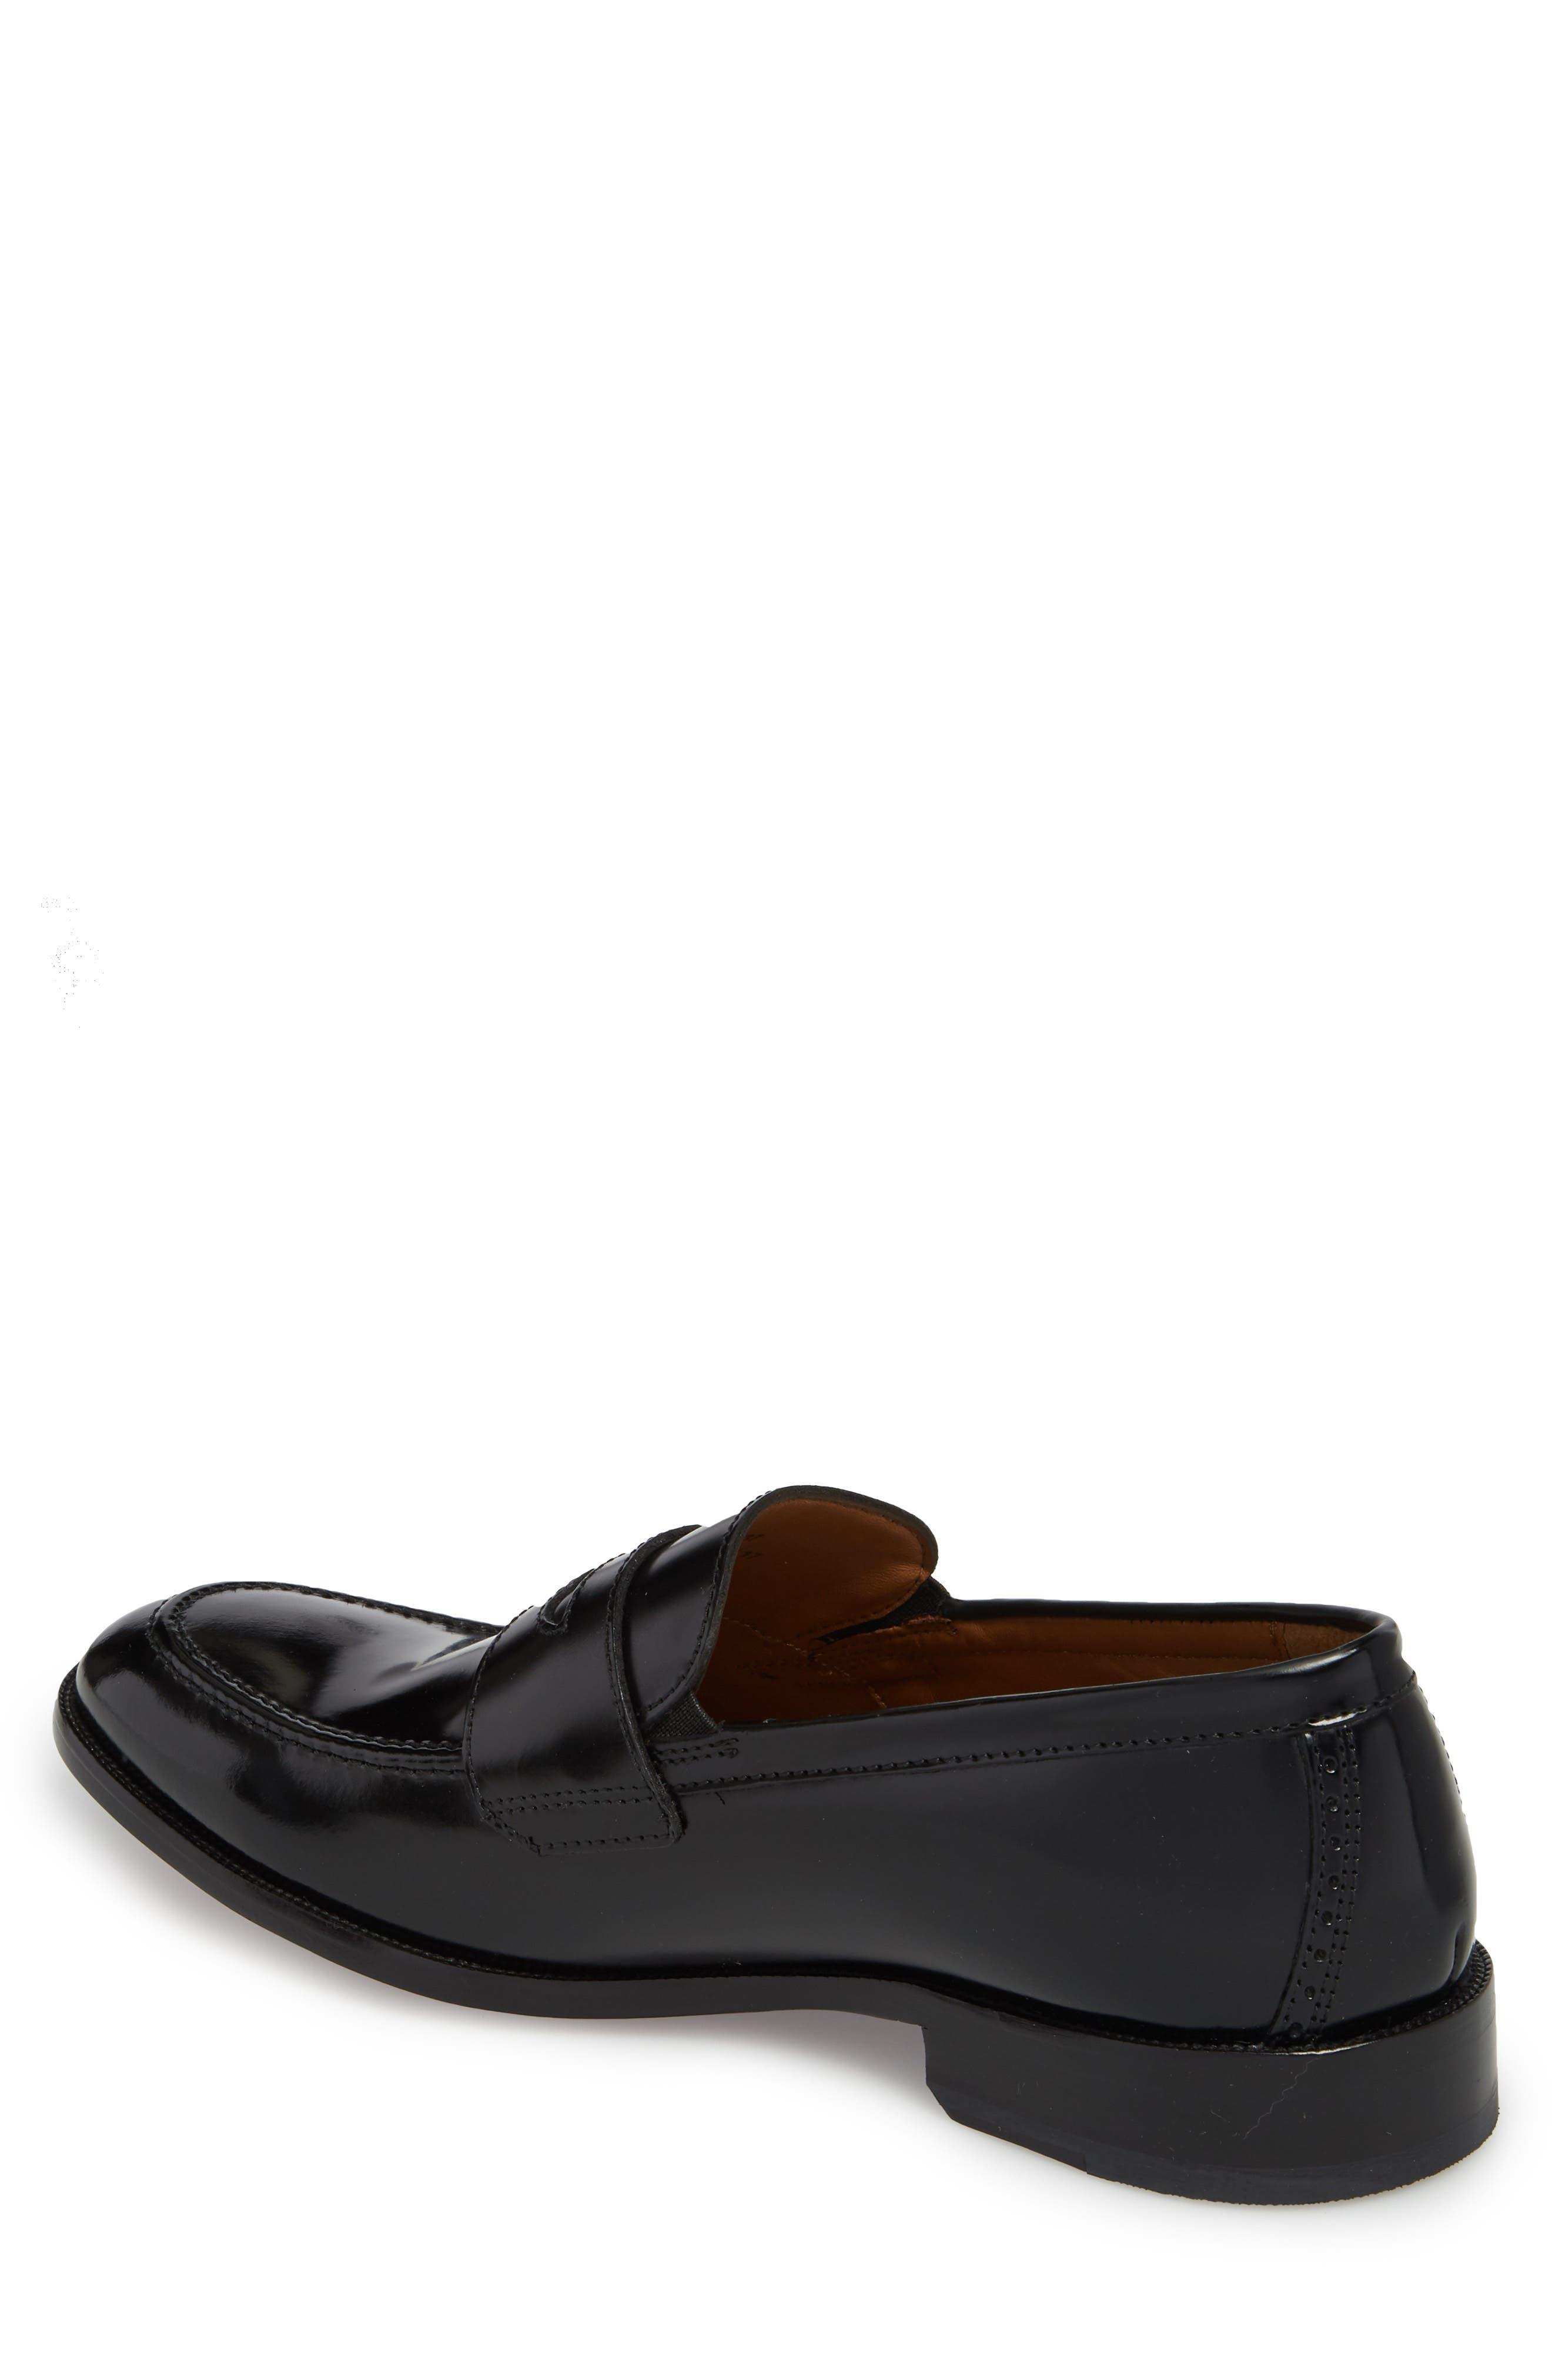 Bradford Penny Loafer,                             Alternate thumbnail 2, color,                             BLACK LEATHER